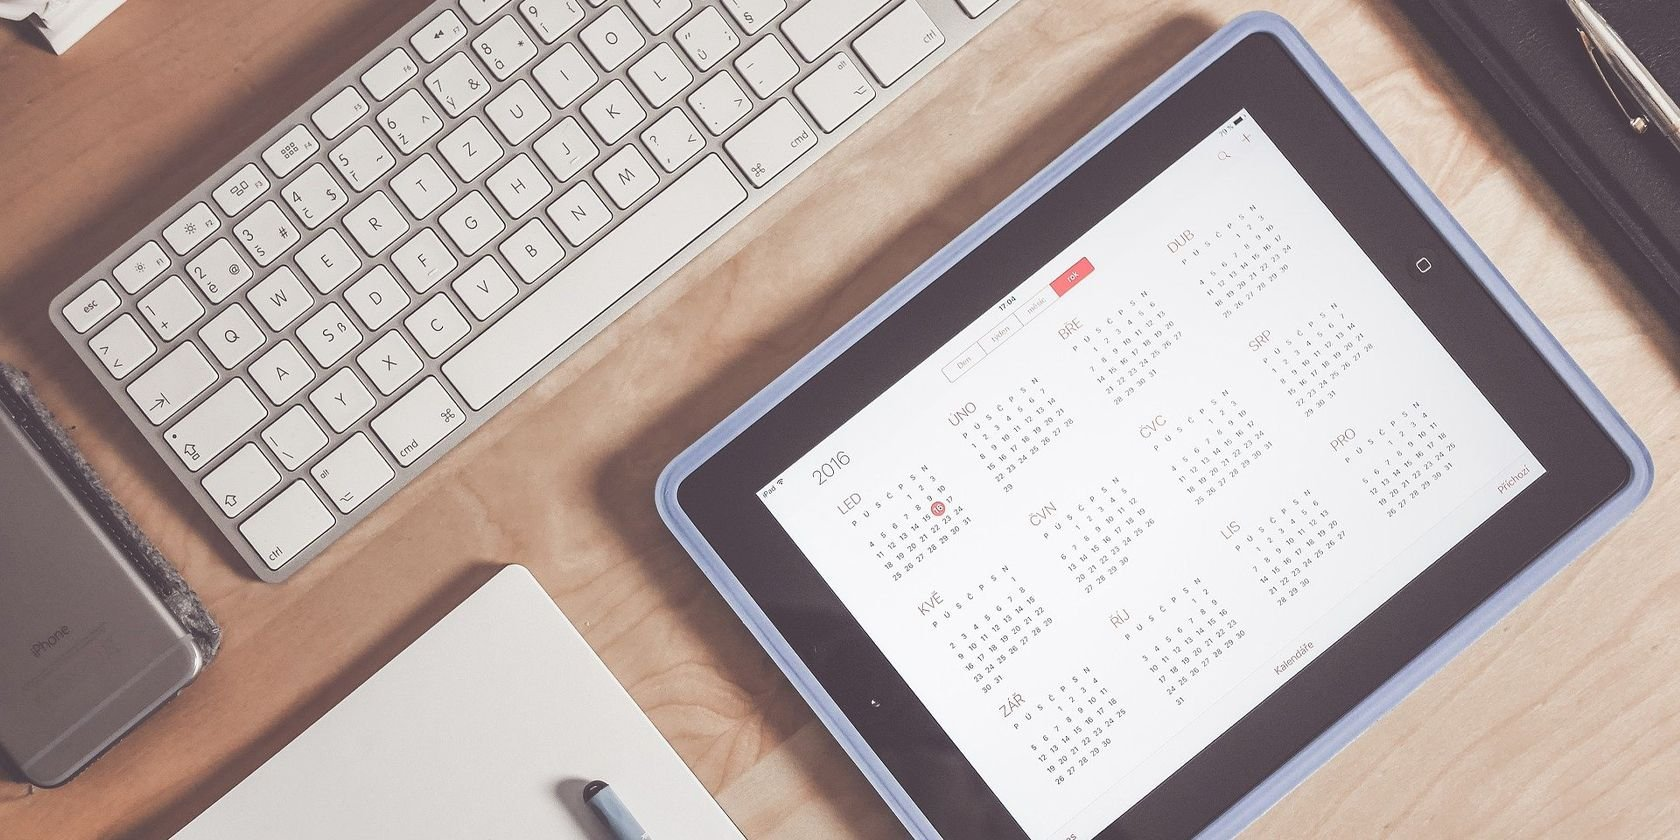 Must-Have Apps and Accessories to Turn Your iPad Into a Productivity Powerhouse